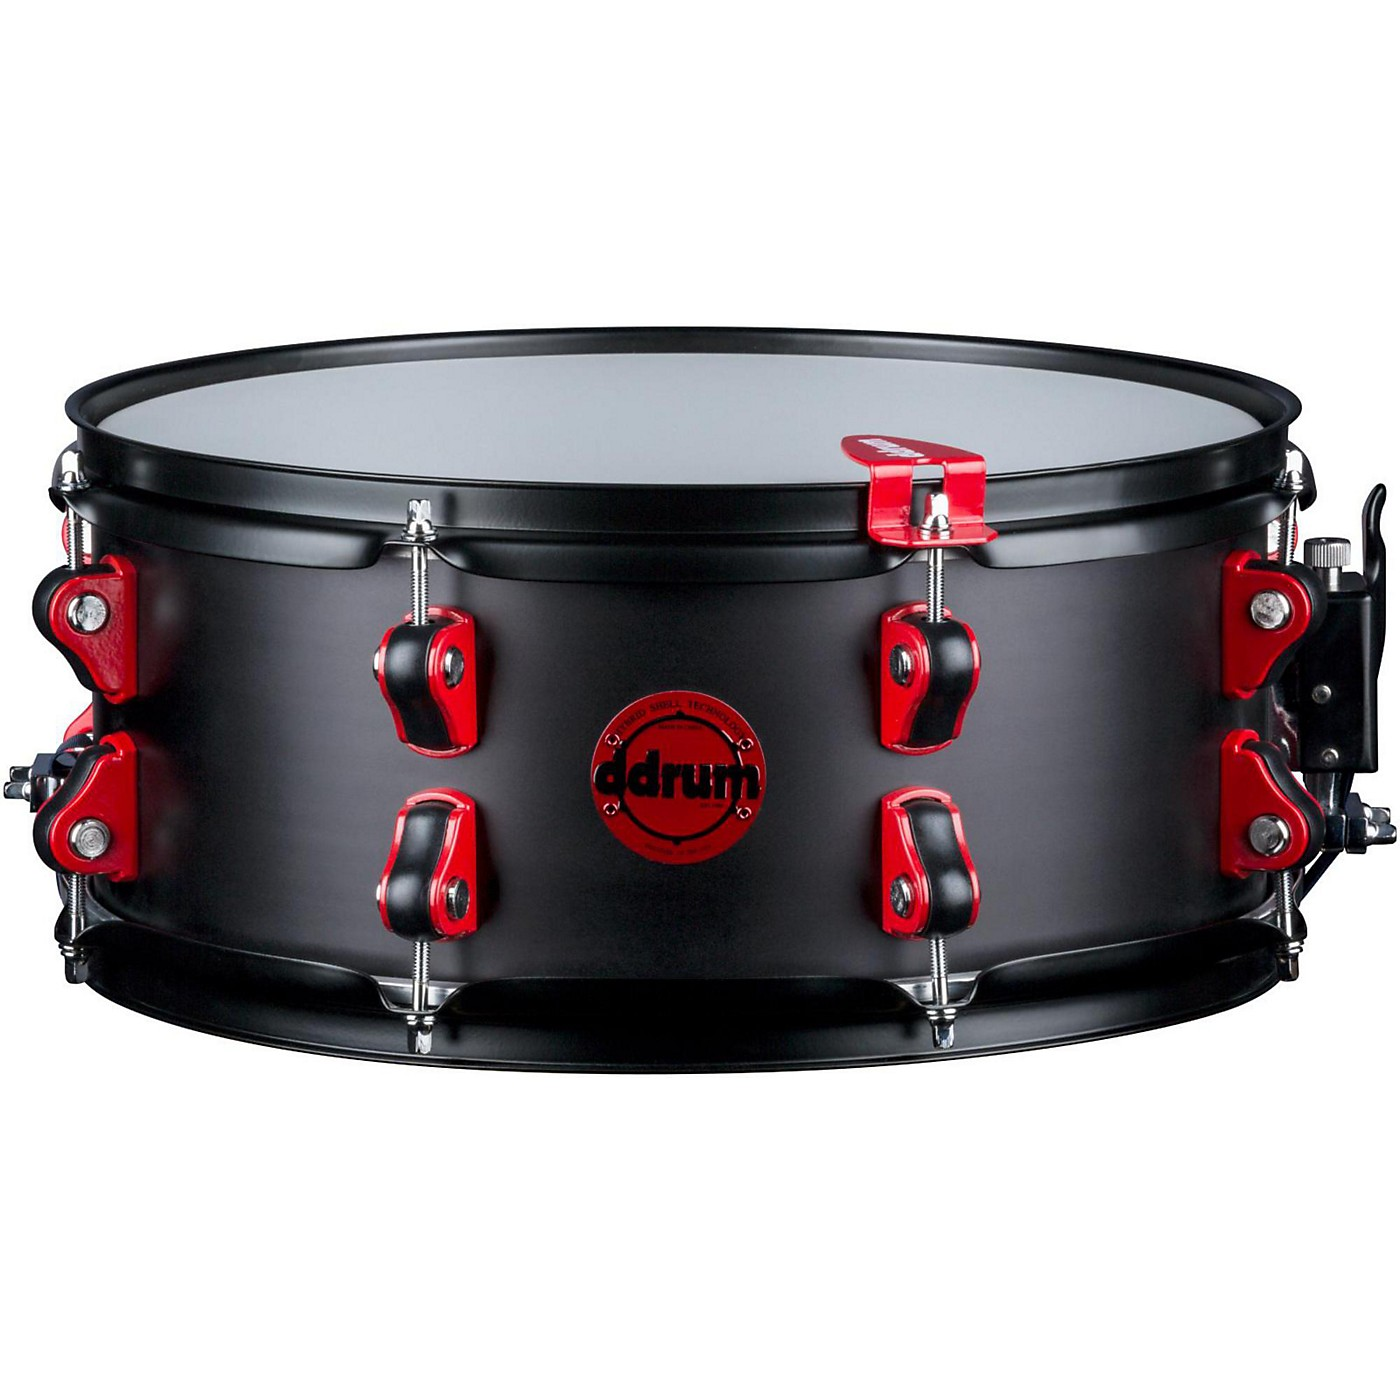 Ddrum Exclusive Hybrid Snare Drum with Trigger thumbnail